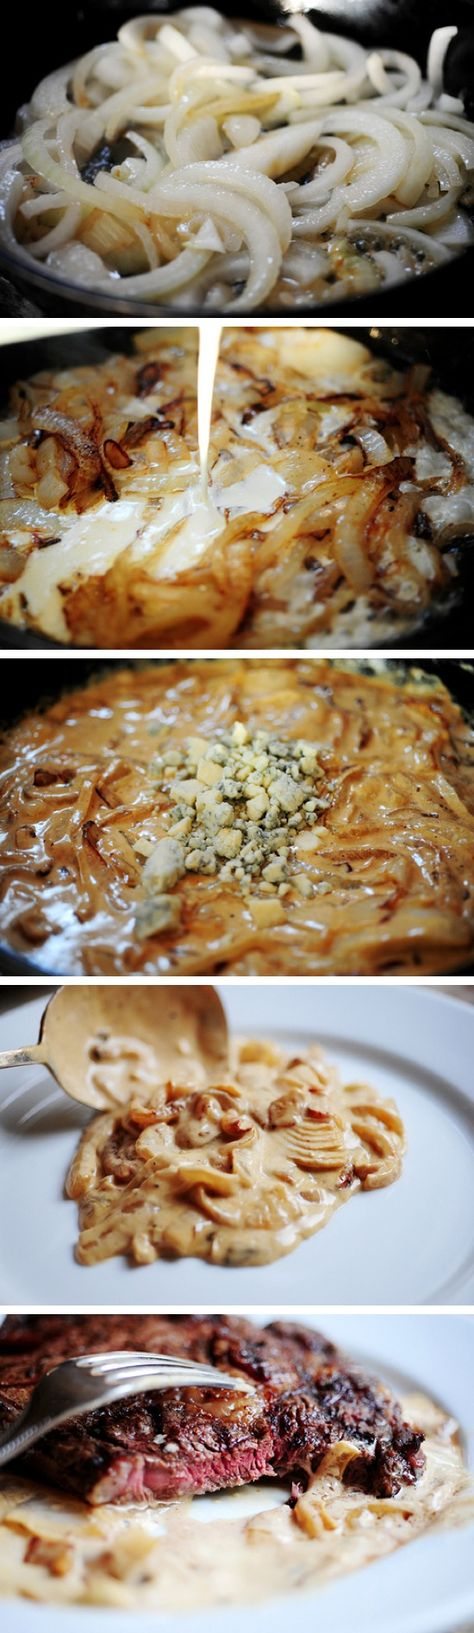 Grilled Steak with Onion-Blue Cheese Sauce | The sauce is to die for! YUM